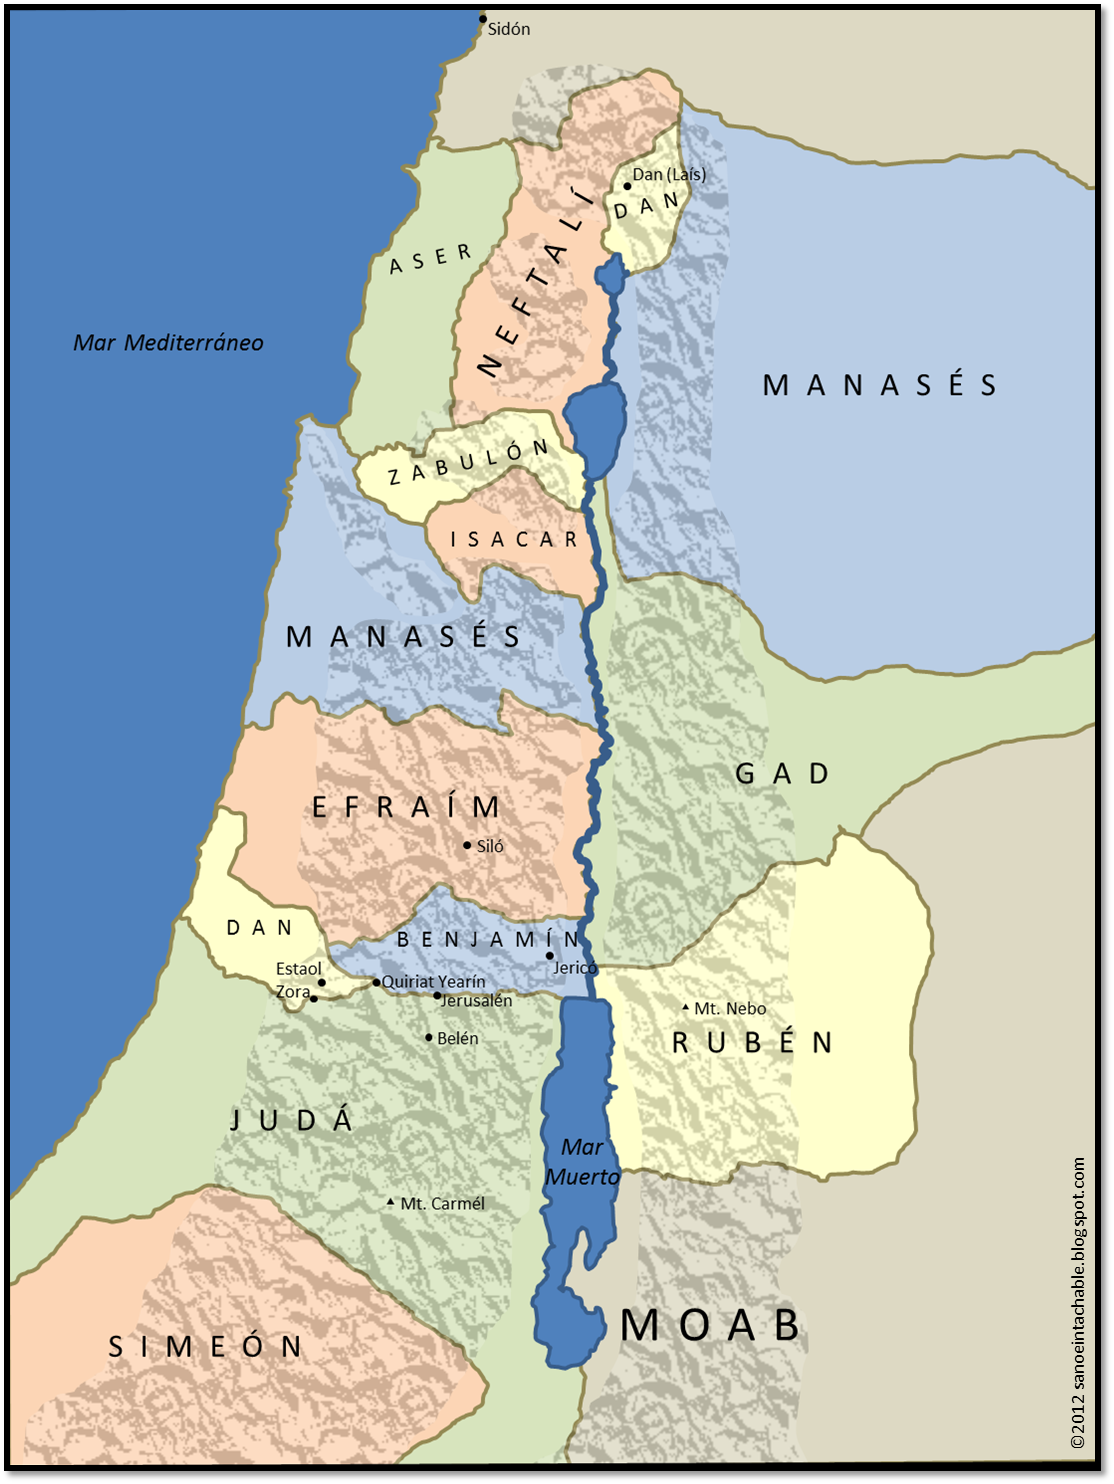 Tribus De Israel Mapa Pinterest Israel And Churches - Mapa de israel